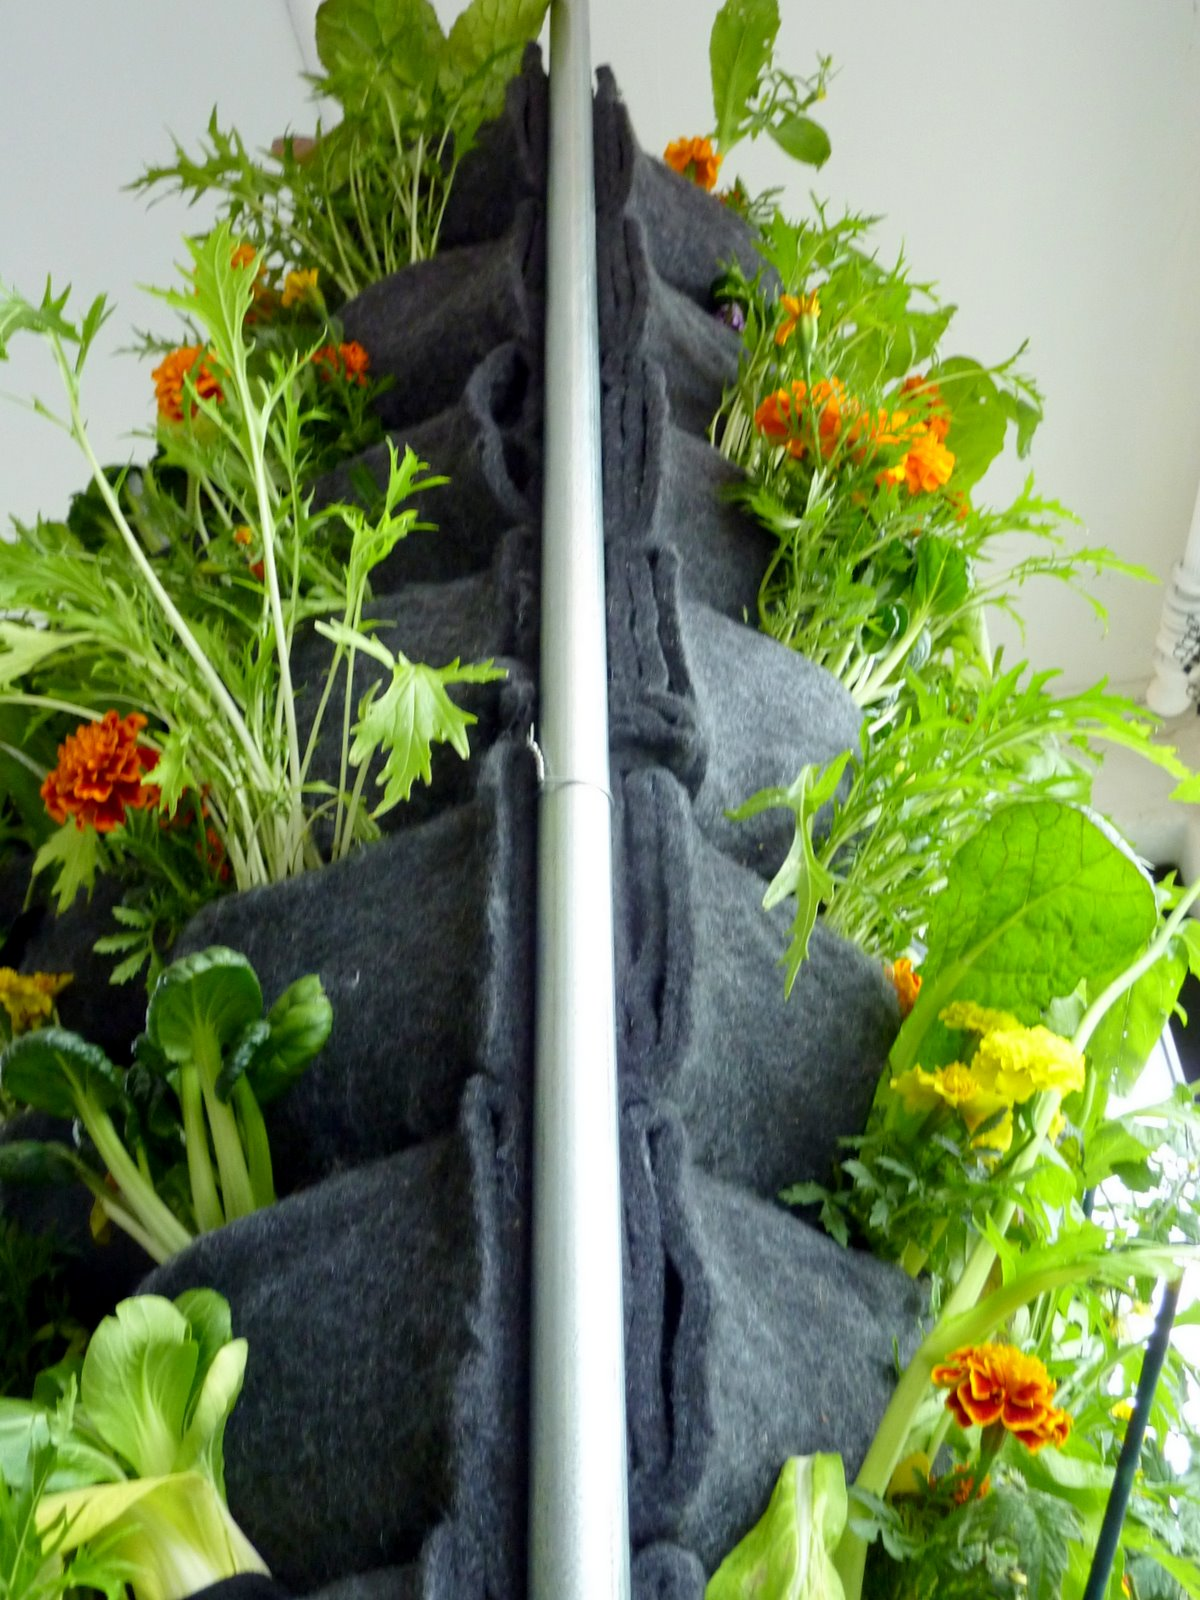 Aquaponic Vertical Vegetable Garden Florafelt Vertical